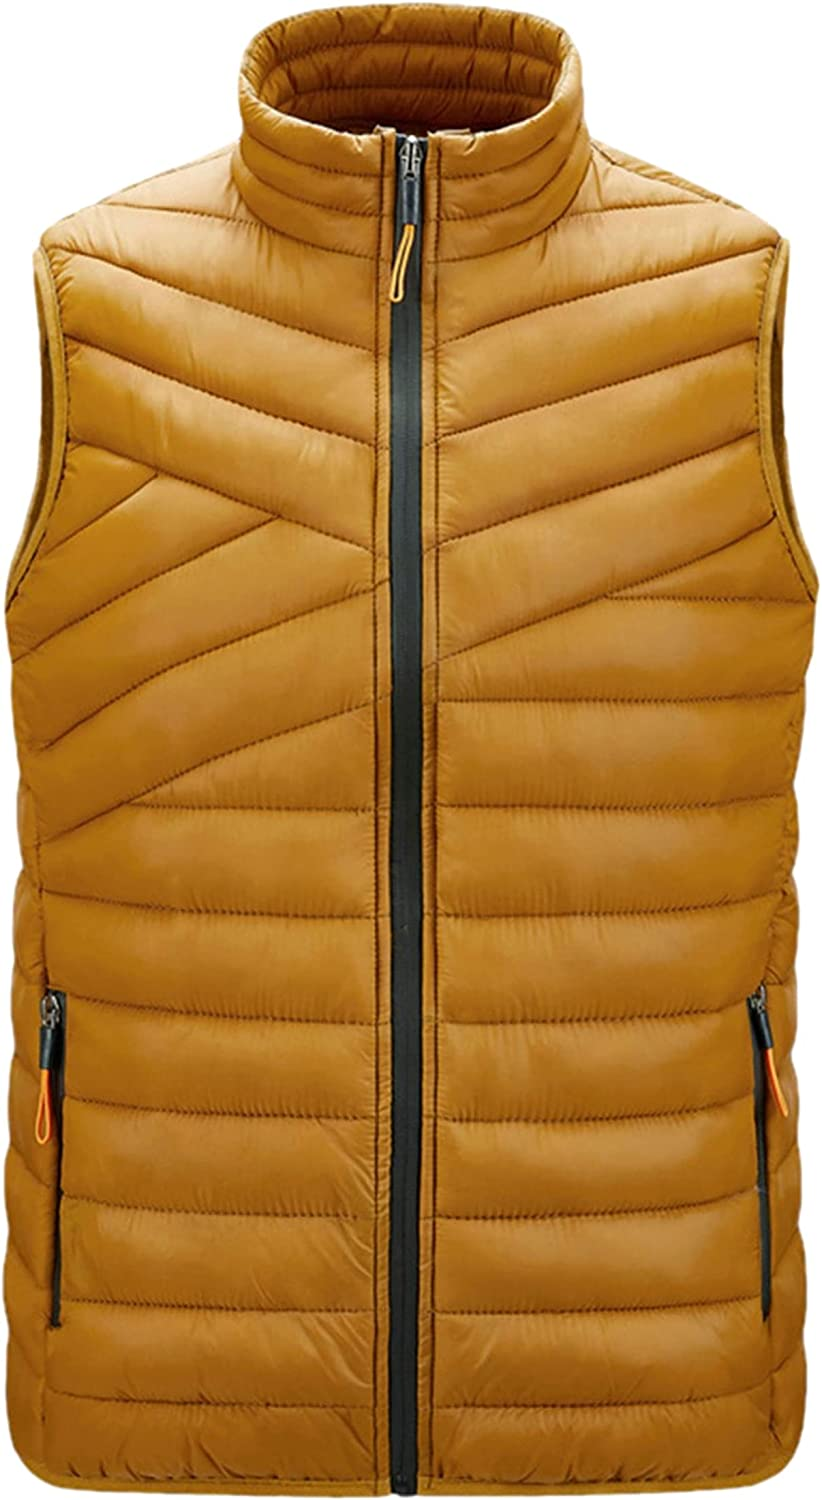 Zontroldy Men's Winter Puffer Quilted Vest Padded Stand Collar Outdoor Down Waistcoat